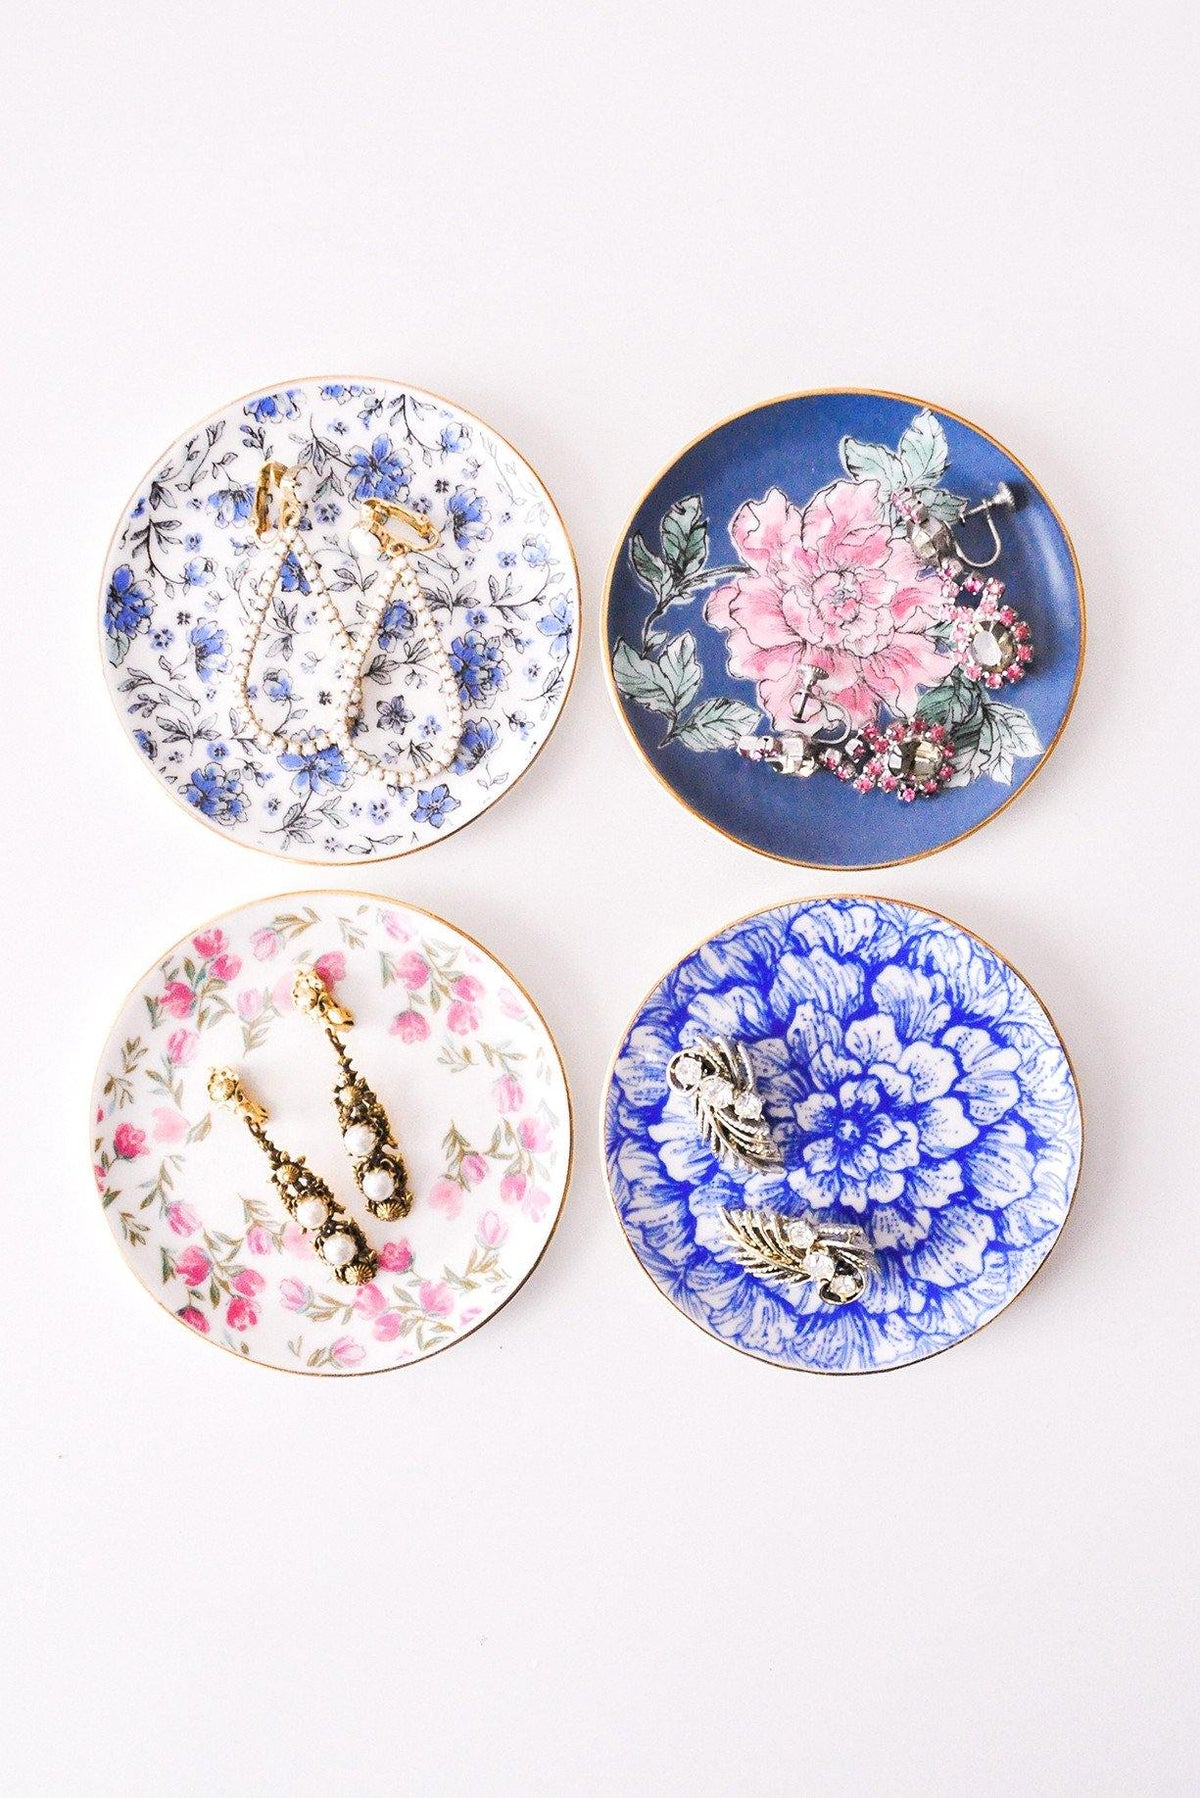 Vintage inspired floral jewelry dishes